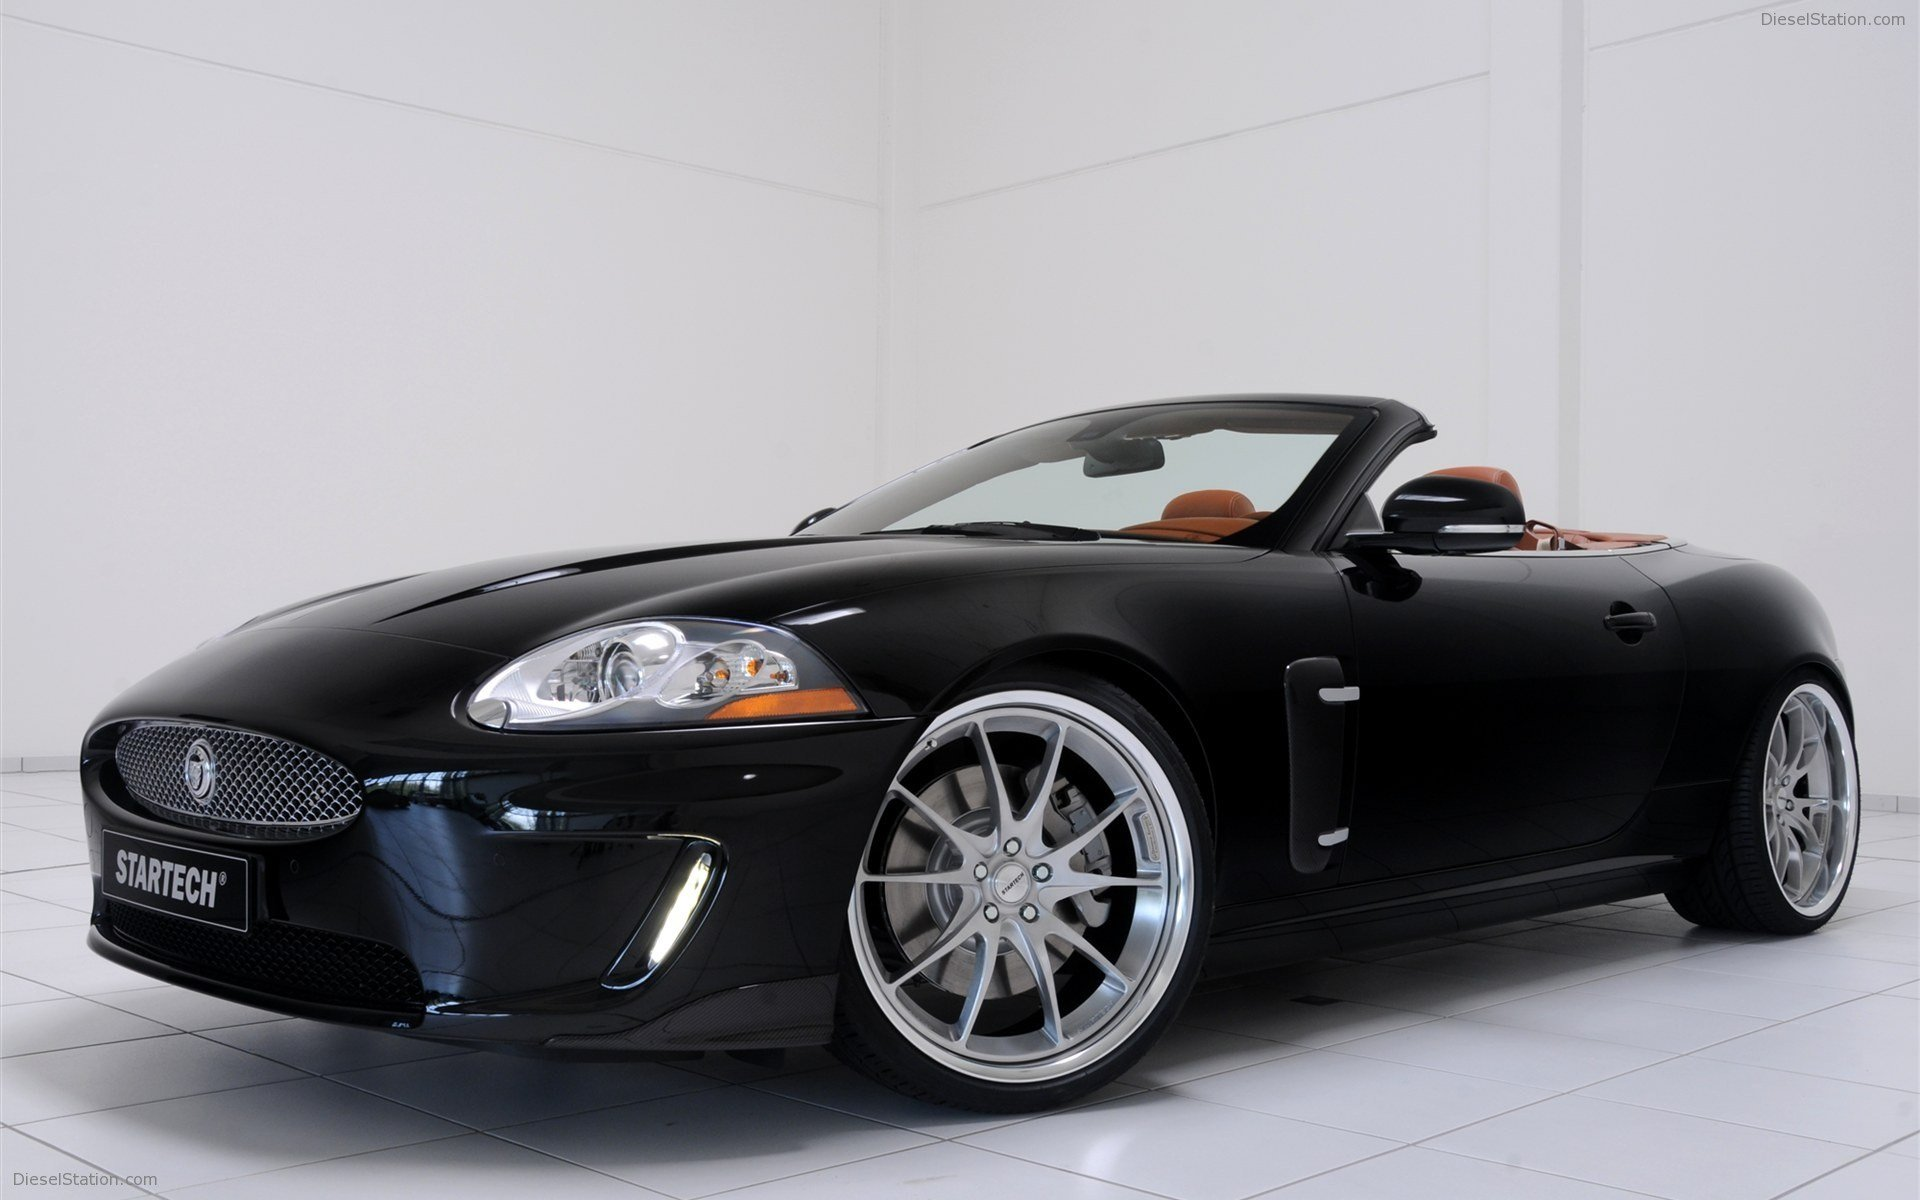 New Startech Jaguar Xk Xkr 2010 Widescreen Exotic Car Pictures On This Month